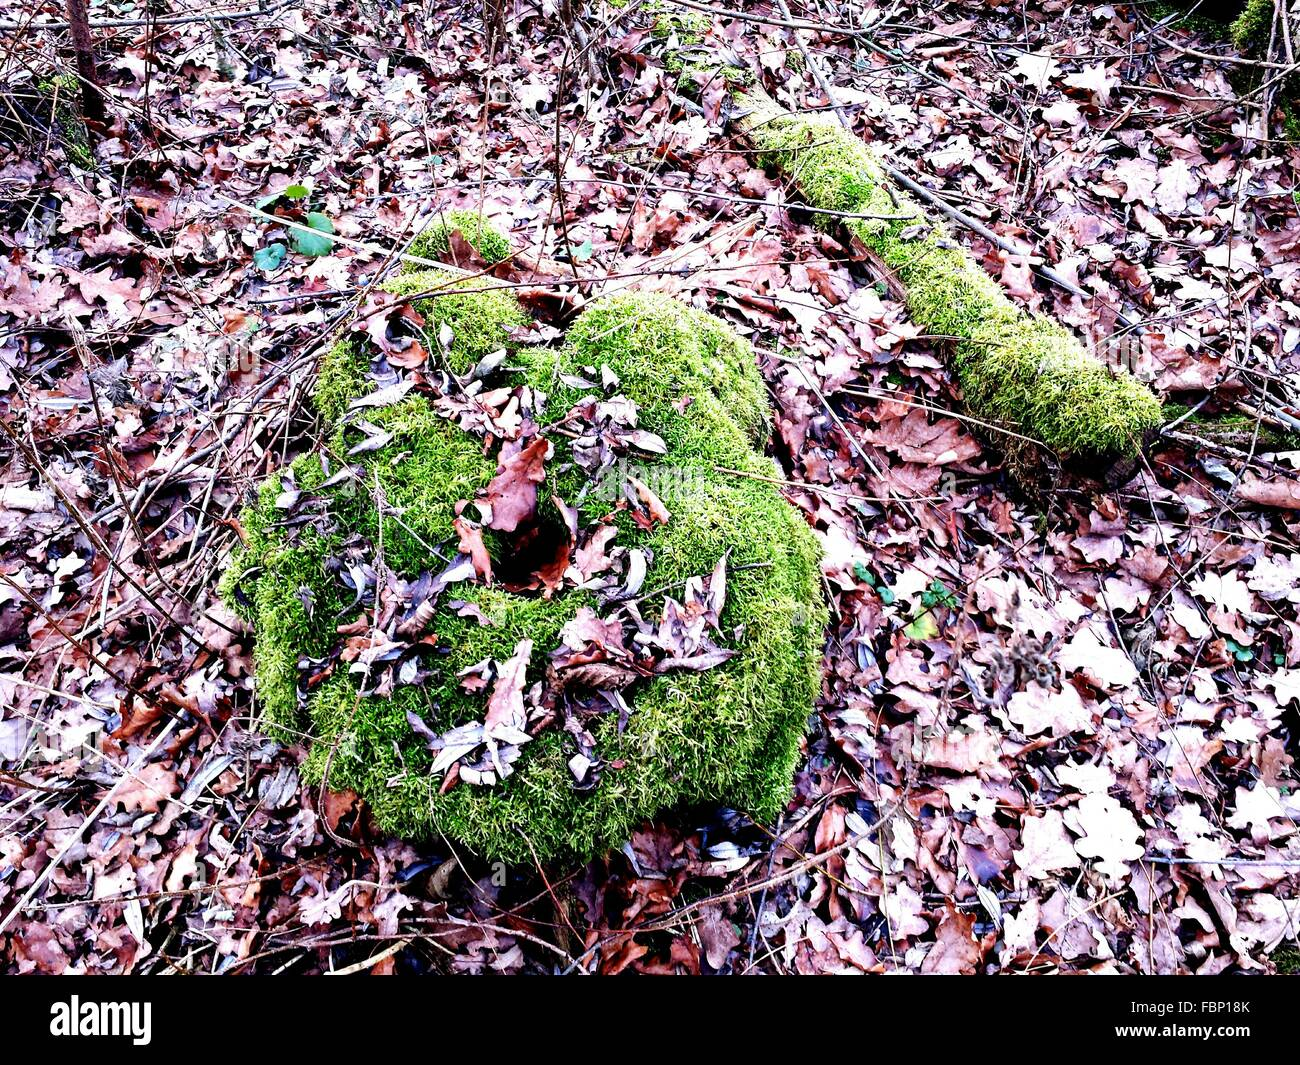 High Angle View Of Moss Covered Tree Stump In Forest Stock Photo